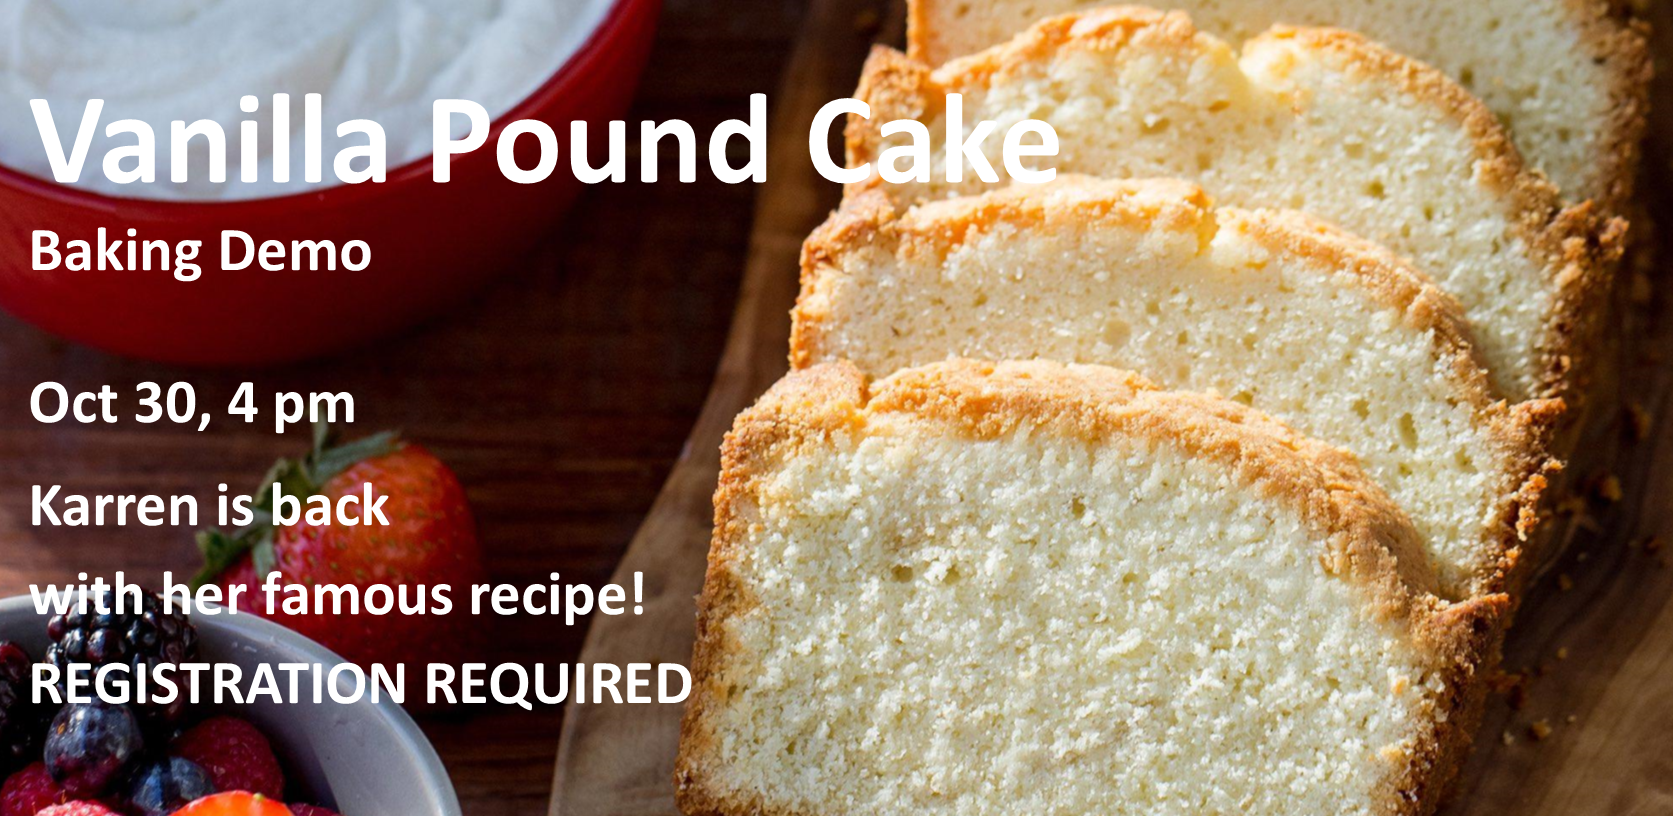 Vanilla Pound Cake Baking Demonstration